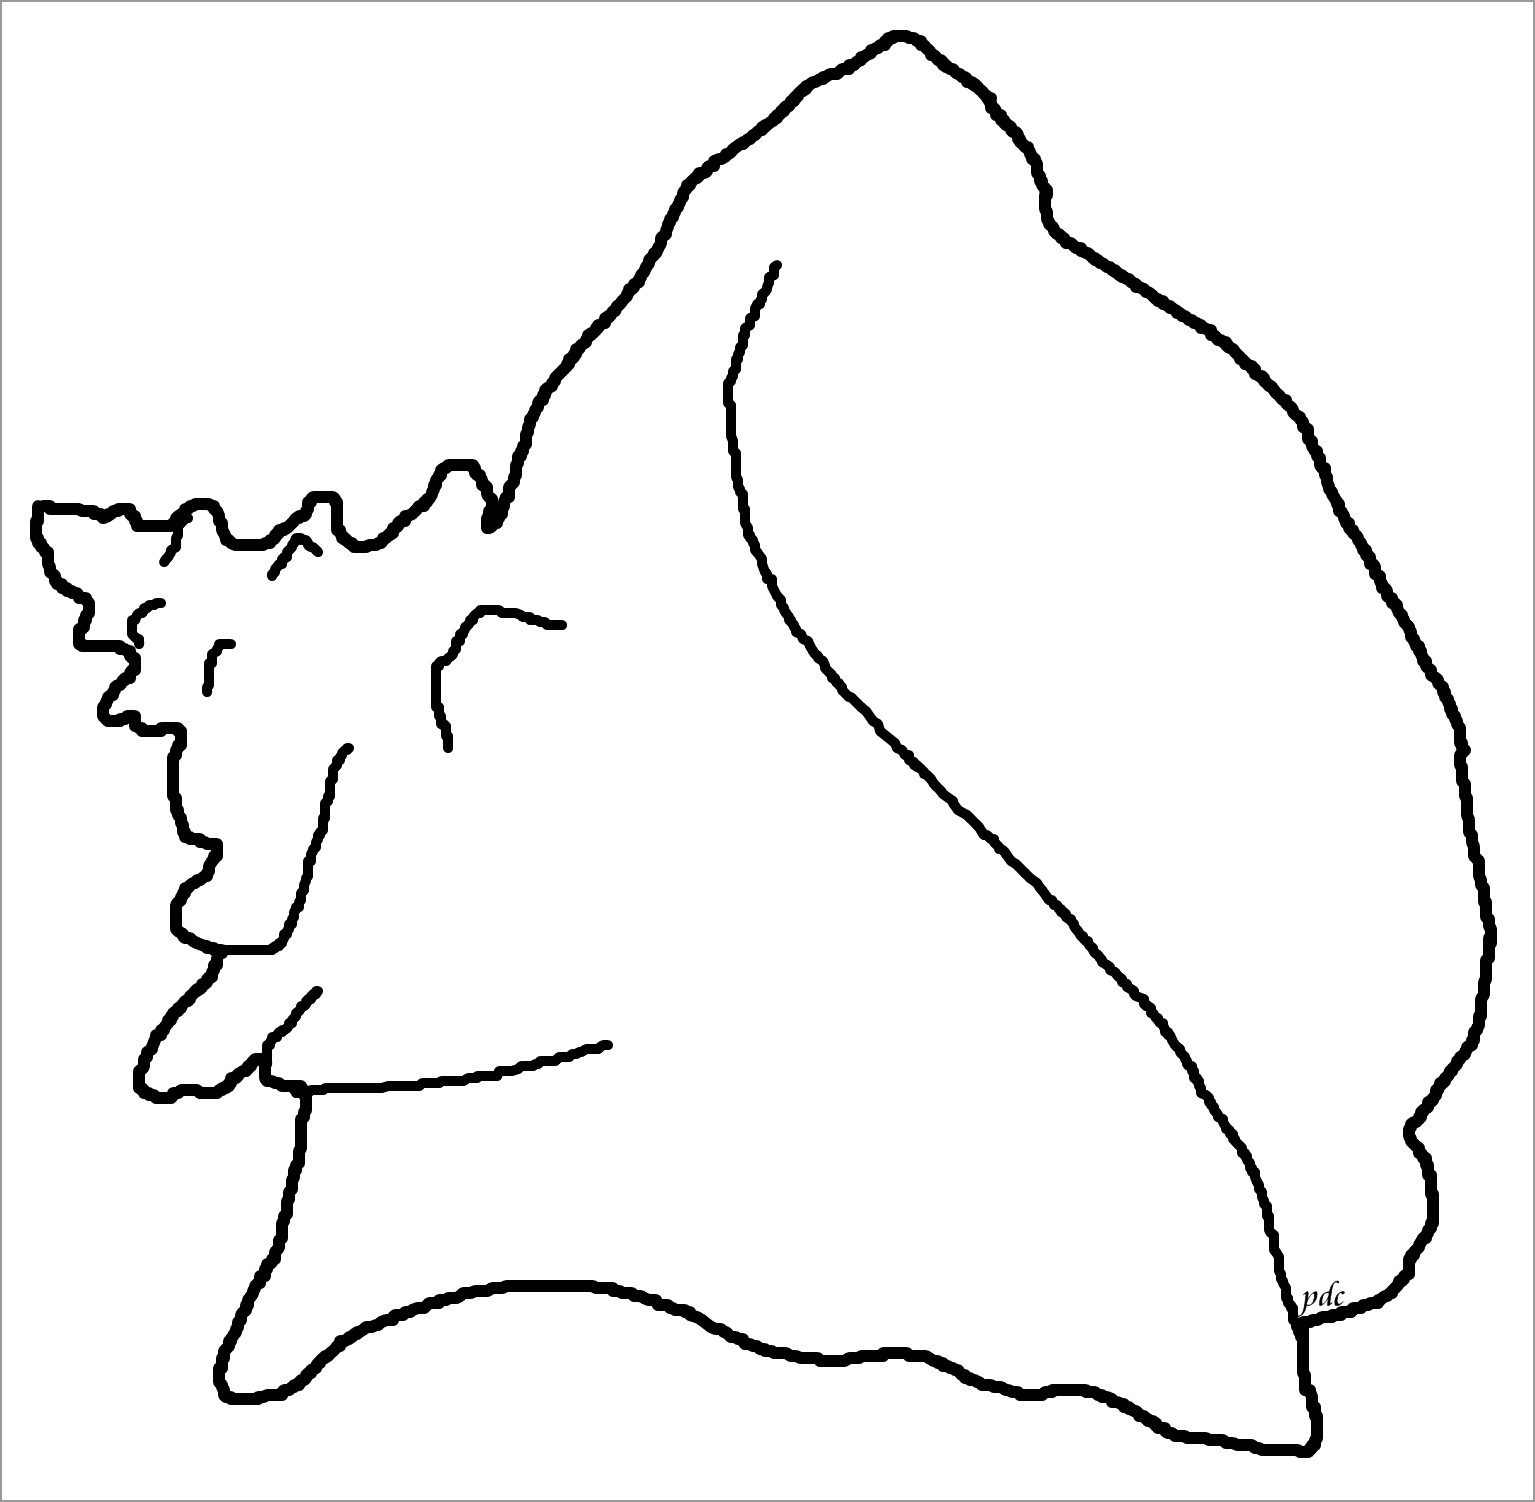 Queen or Pink Conch Coloring Page for Kids